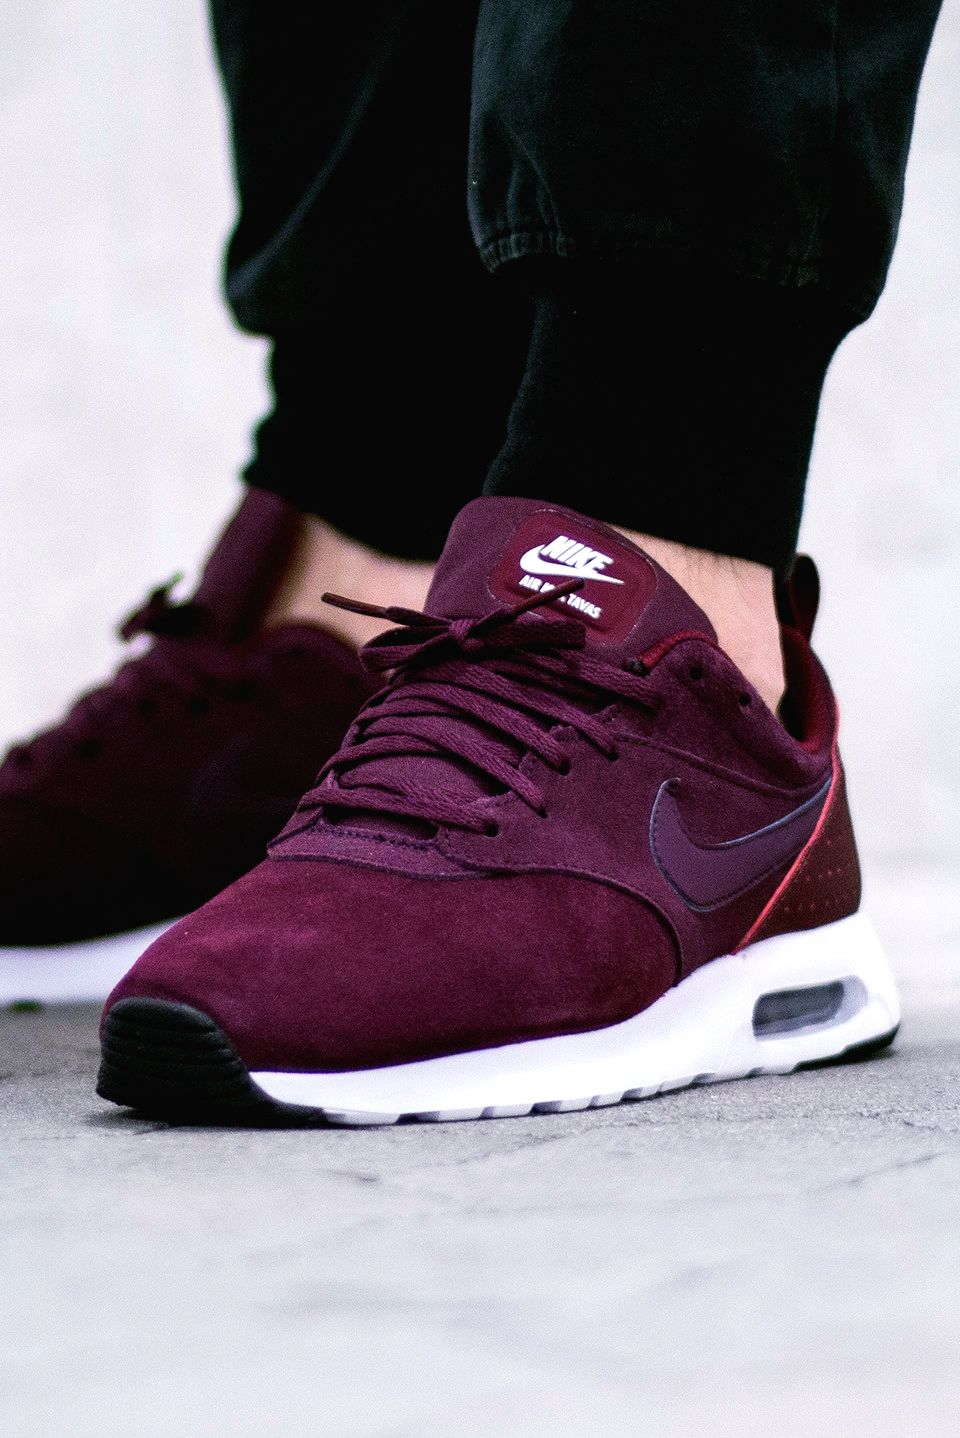 1ddf3b59759f33 Nike Air Max Tavas LTR  Night Maroon  (via Kicks-daily.com)